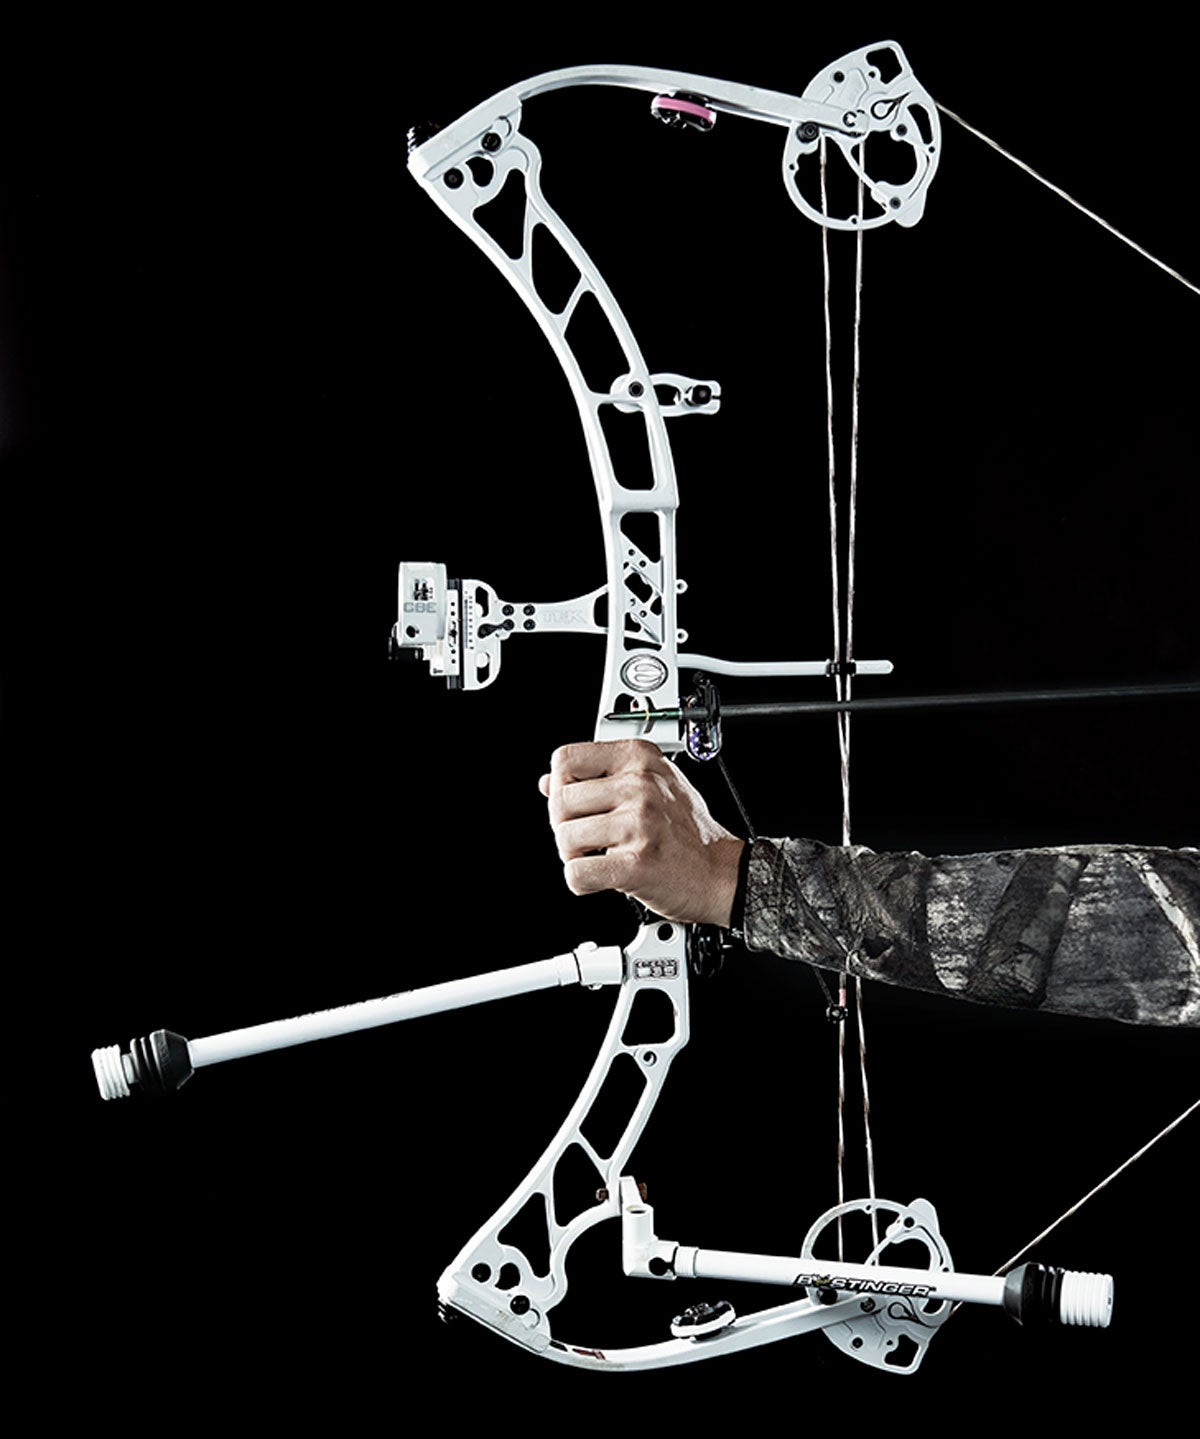 Bow Hyperaccuracy: Levi Morgan's Hunting Bow